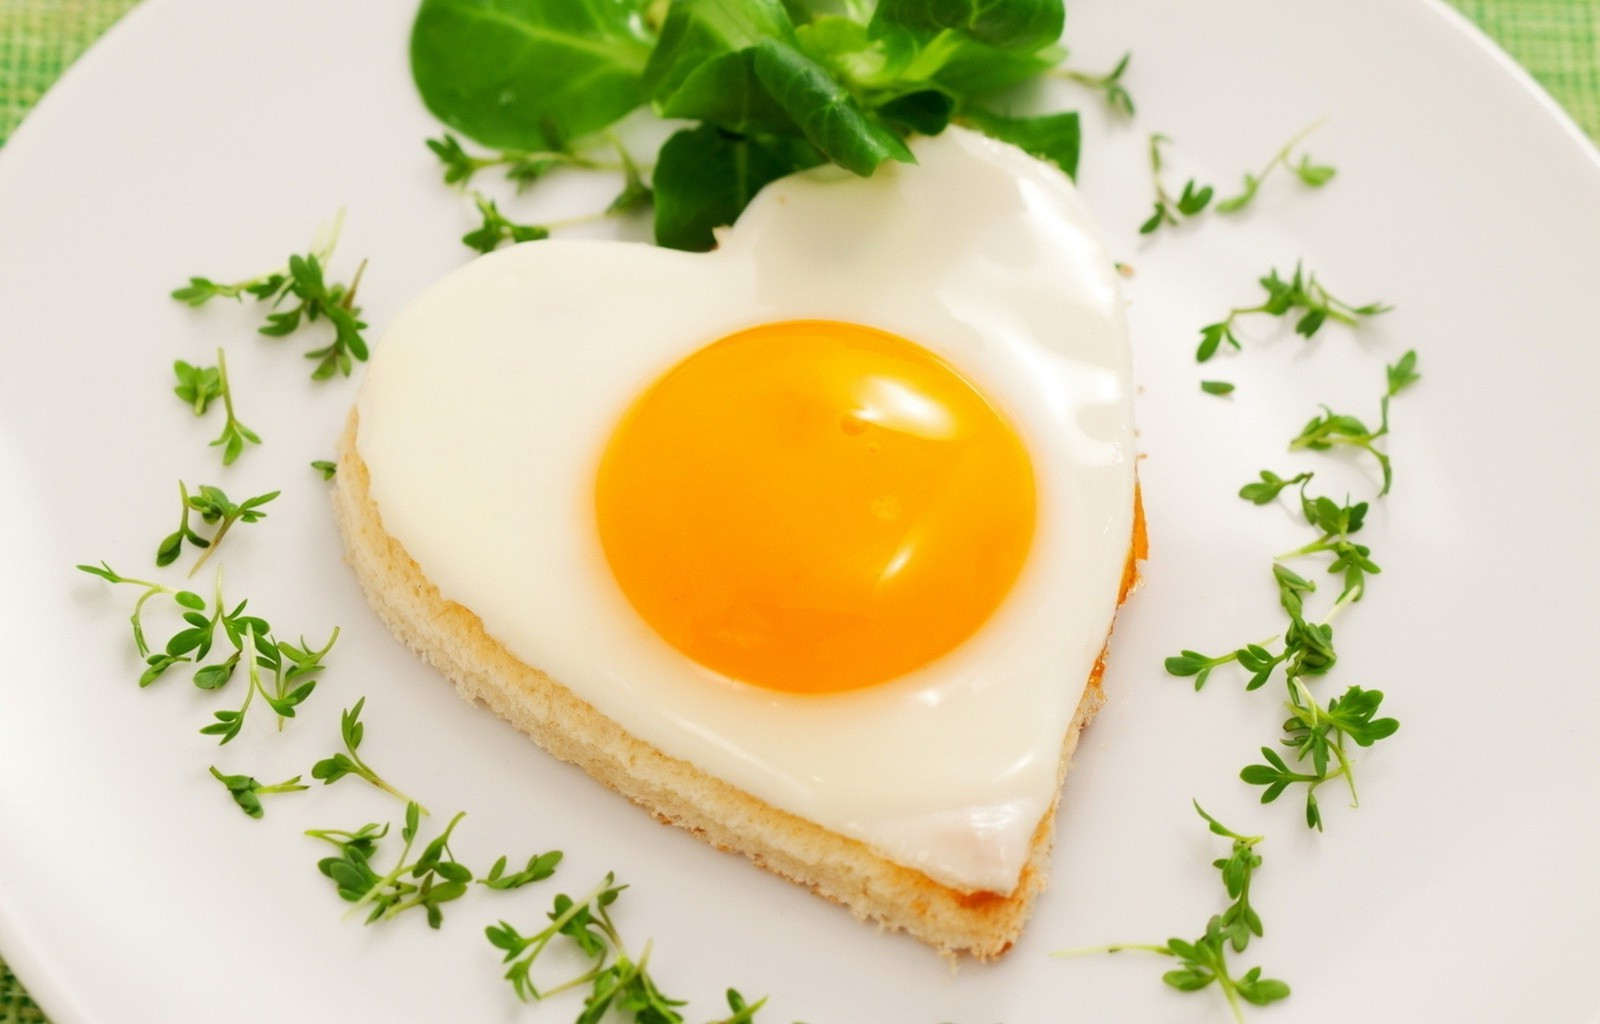 breakfast egg egg yolk food nutrition delicious lunch toast meal dawn cooking leaf bread dairy product plate butter dinner